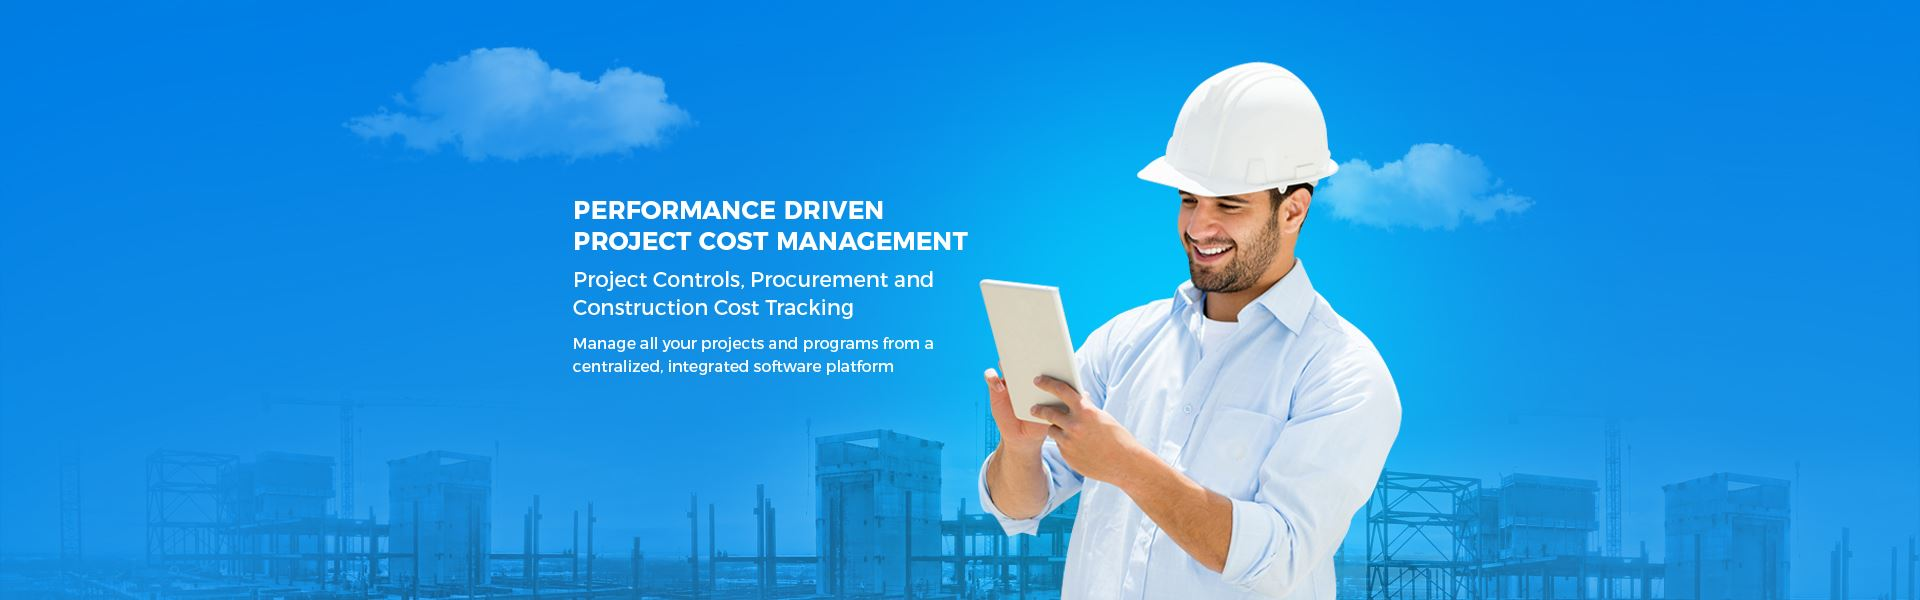 4castplus Project Cost Management Software